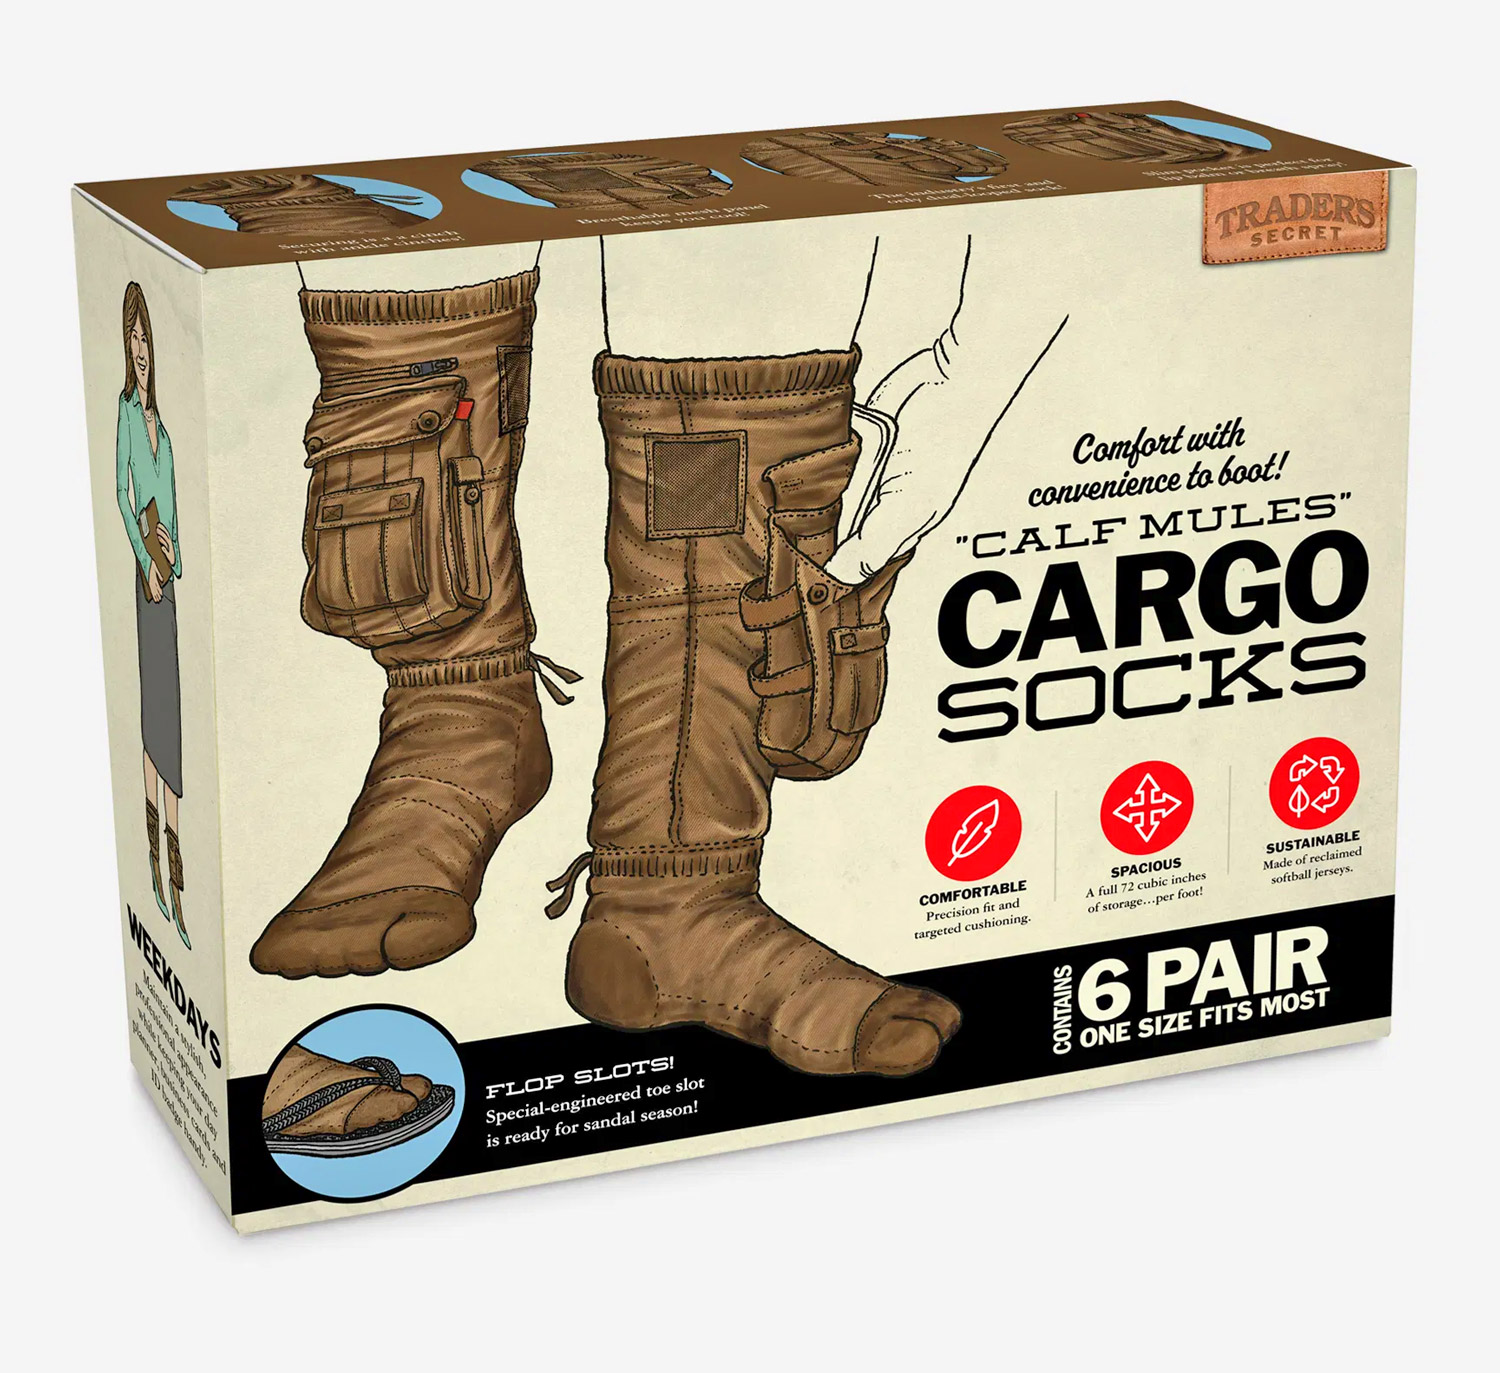 cargo-socks-are-now-a-thing-so-you-can-hold-your-phone-snacks-or-cash-right-in-your-sock-pocke...jpg